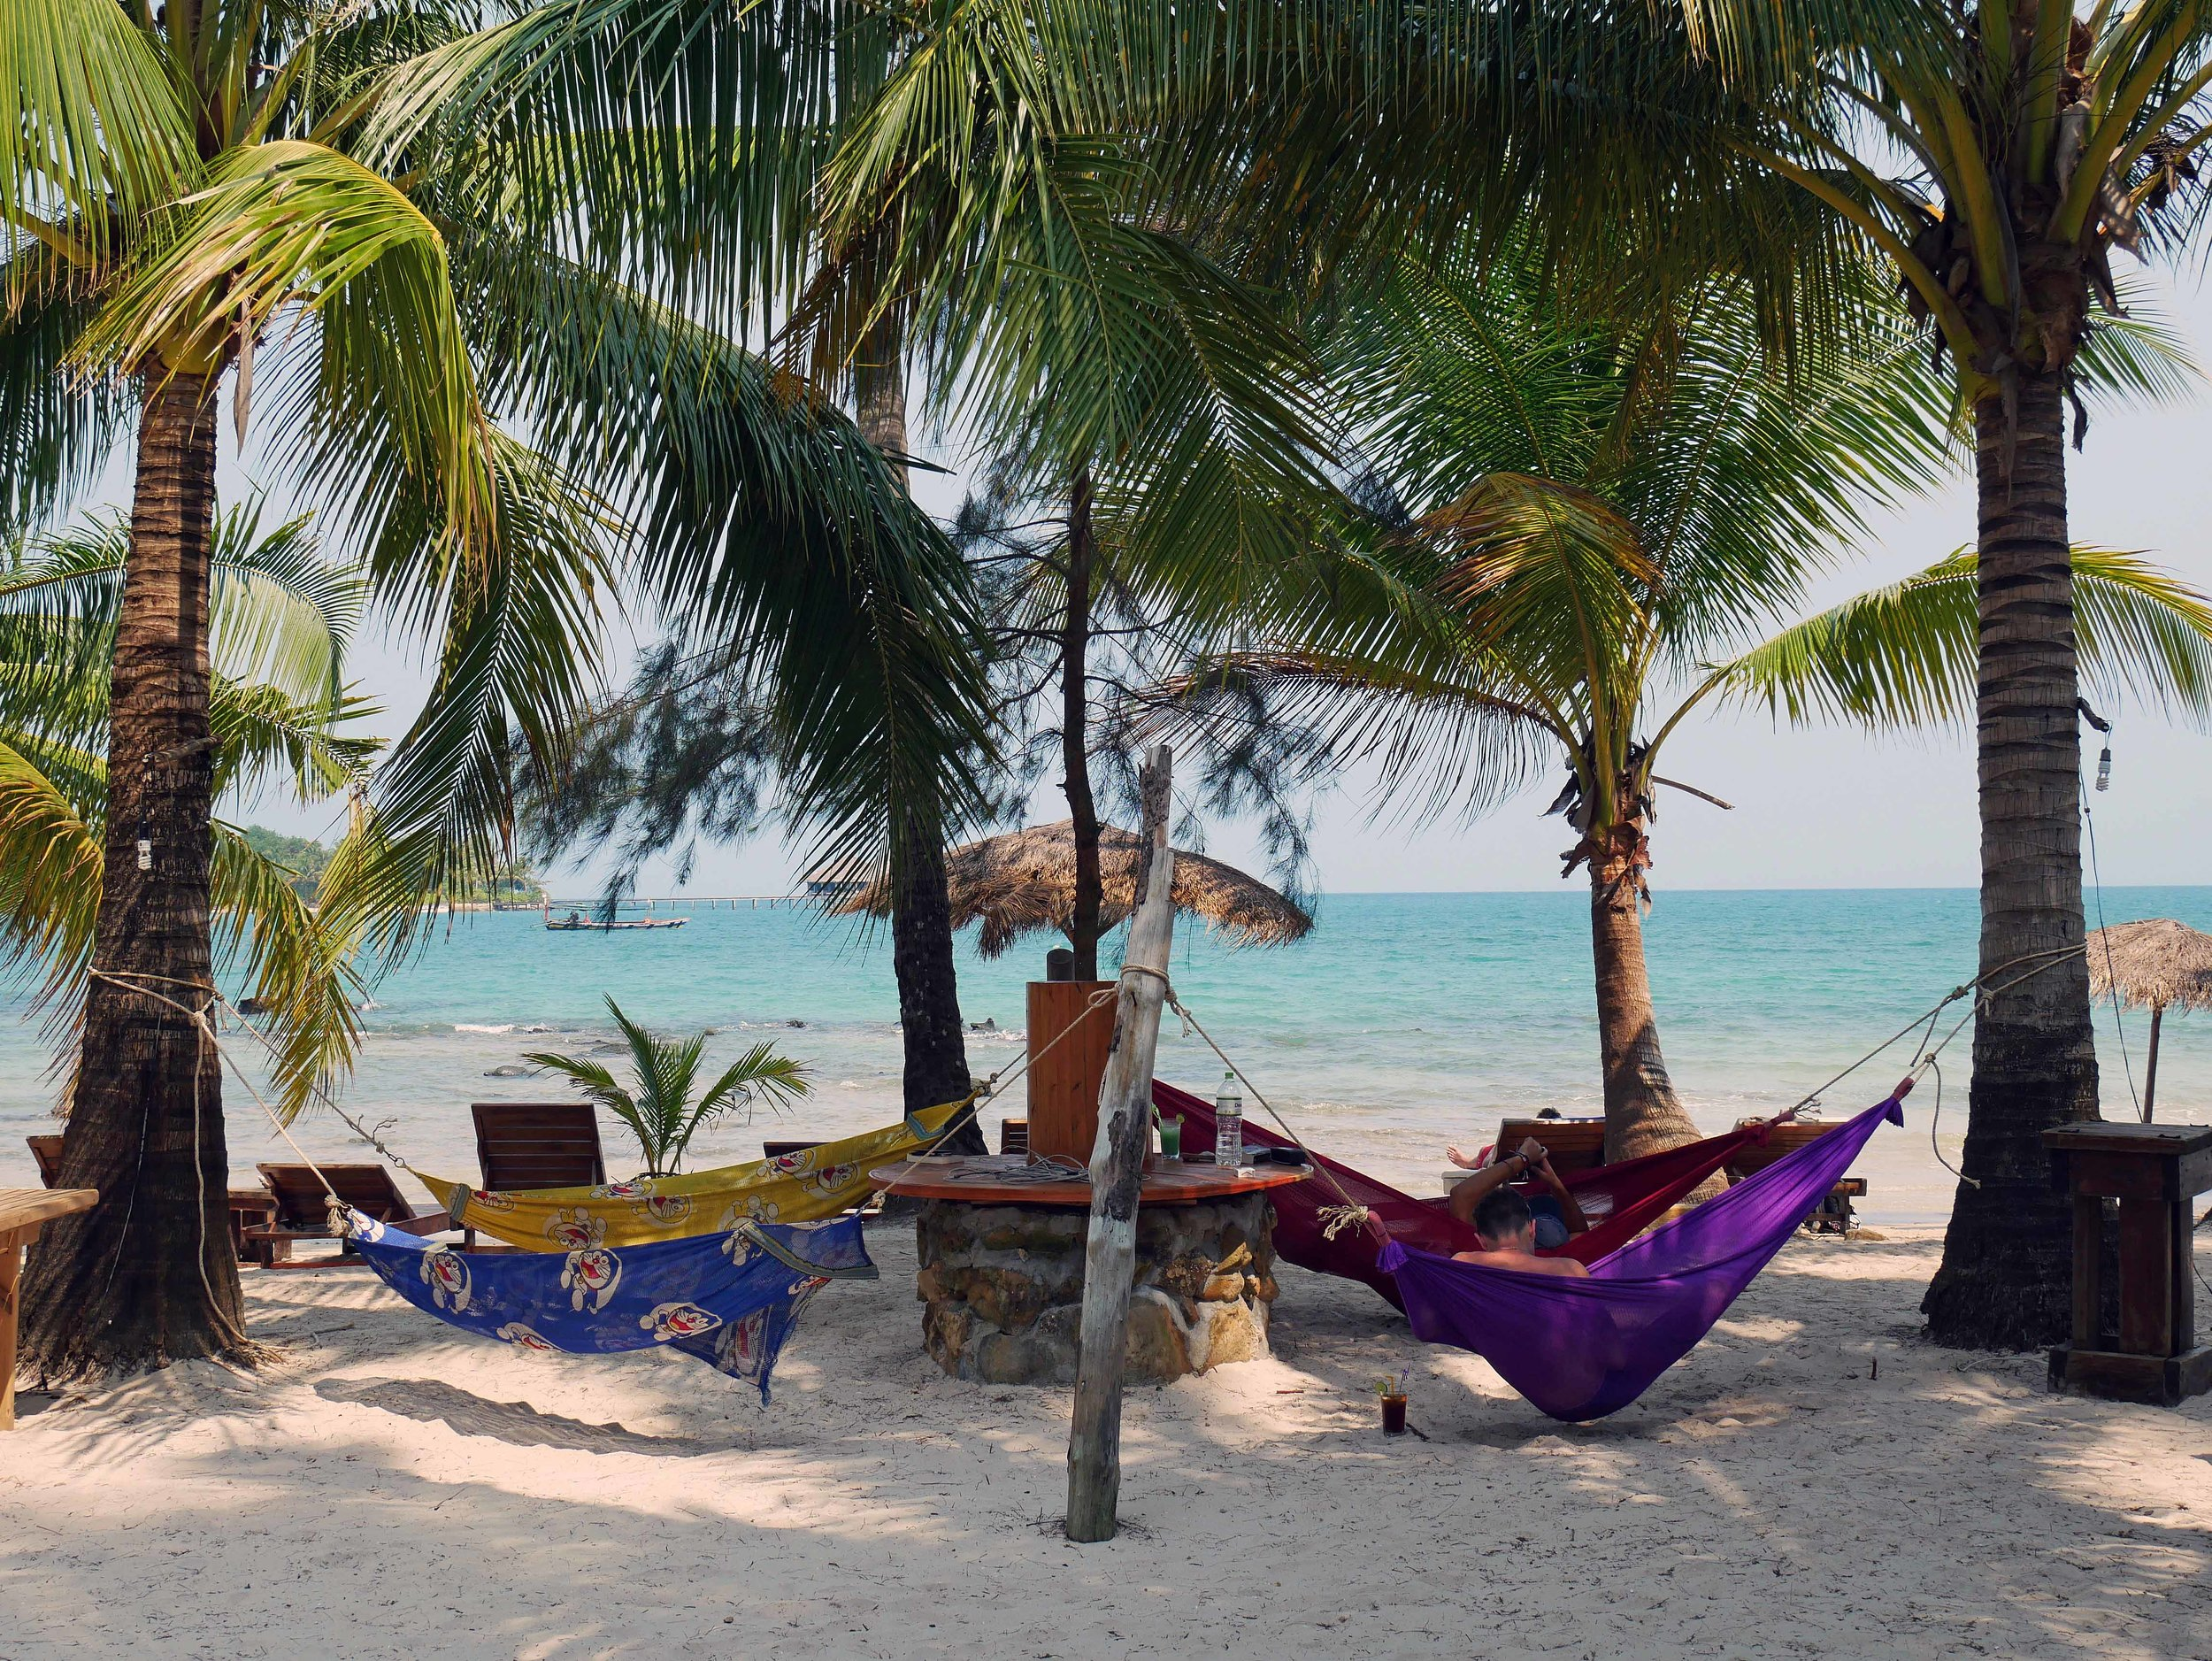 Surrounded by beaches on either side, we found respite in the isolation of Palm Beach Bungalows (March 2-9).